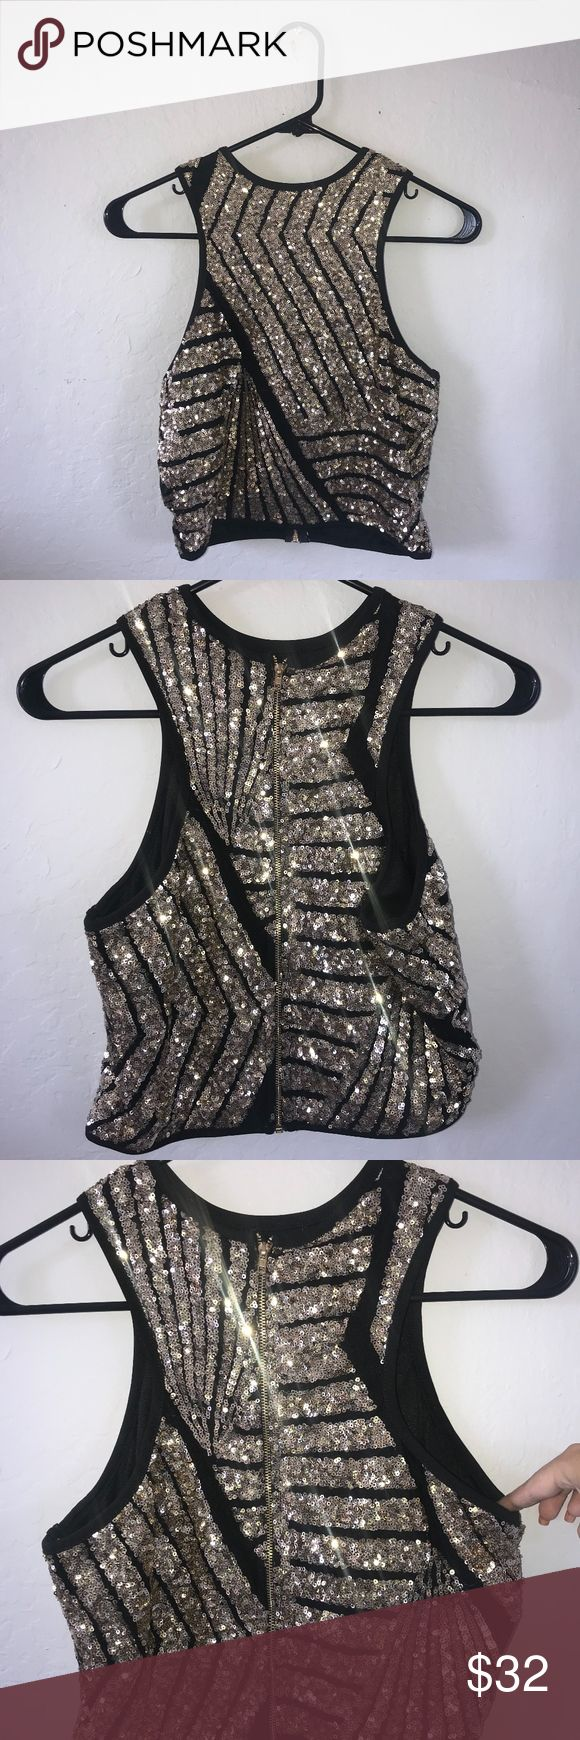 Gold & Black Crop Top Gold & Black sparkly crop top from Windsor. Perfect for upcoming holiday festivities. The black detailing between the sparkles has a sheer look to it but it is not actually sheer in any way.  Zipper on the back.  I'm 5'3 and it reaches my ribs. Could probably fit someone who usually wears a size M. Brand New with tags. Windsor Tops Crop Tops